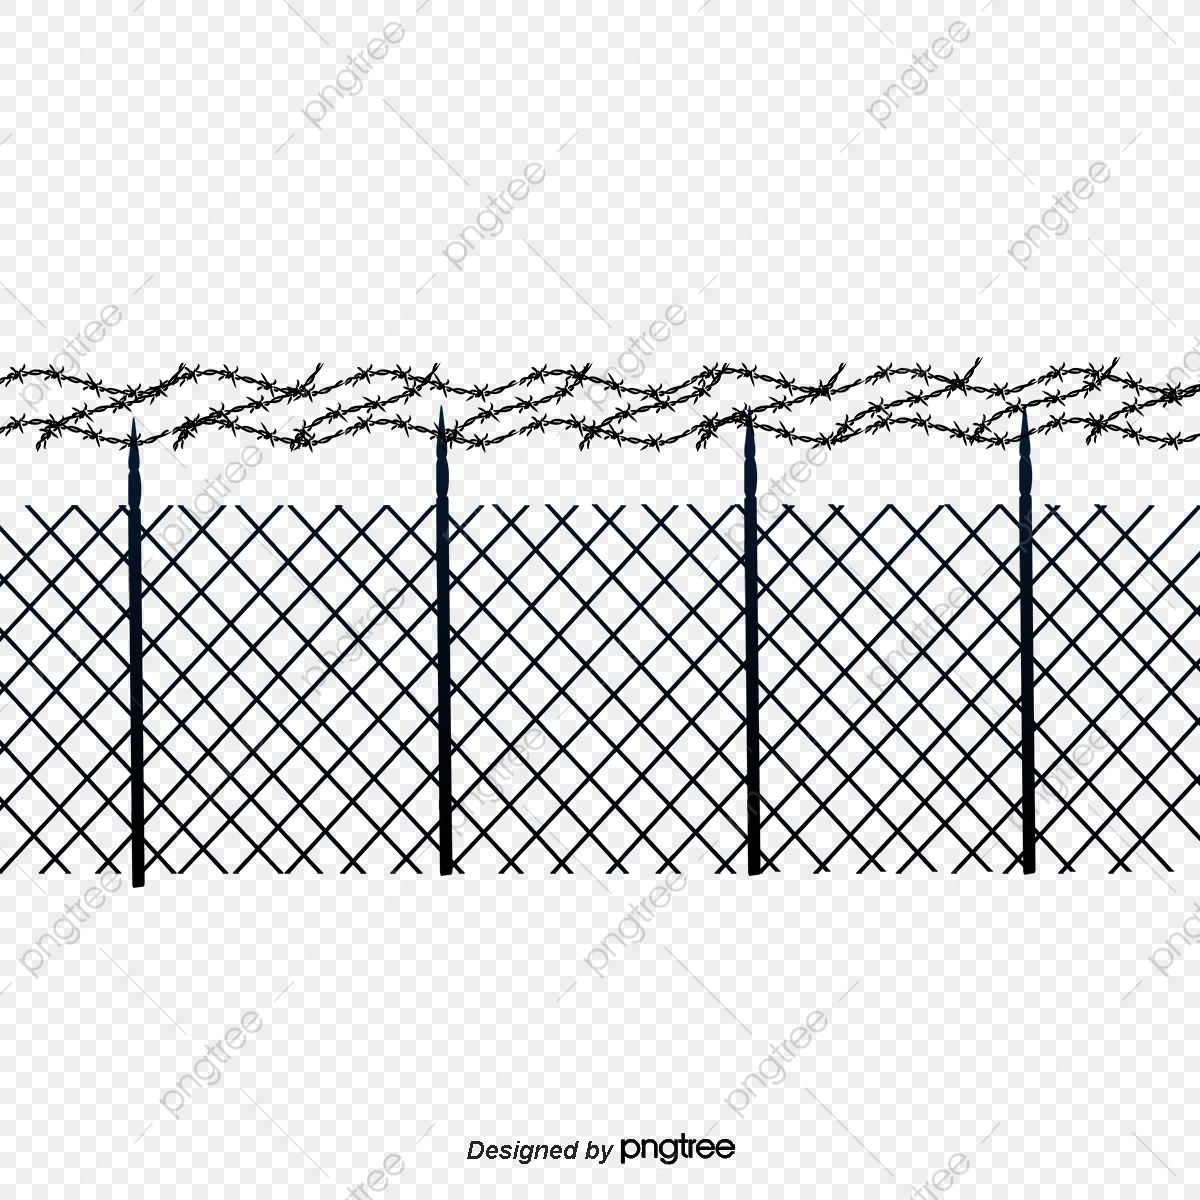 Download This Barbed Wire Fence Black Hand Painted Barbed Wire Transparent Png Or Vector File For Free Pngtree H Barbed Wire Fencing Wire Fence Barbed Wire